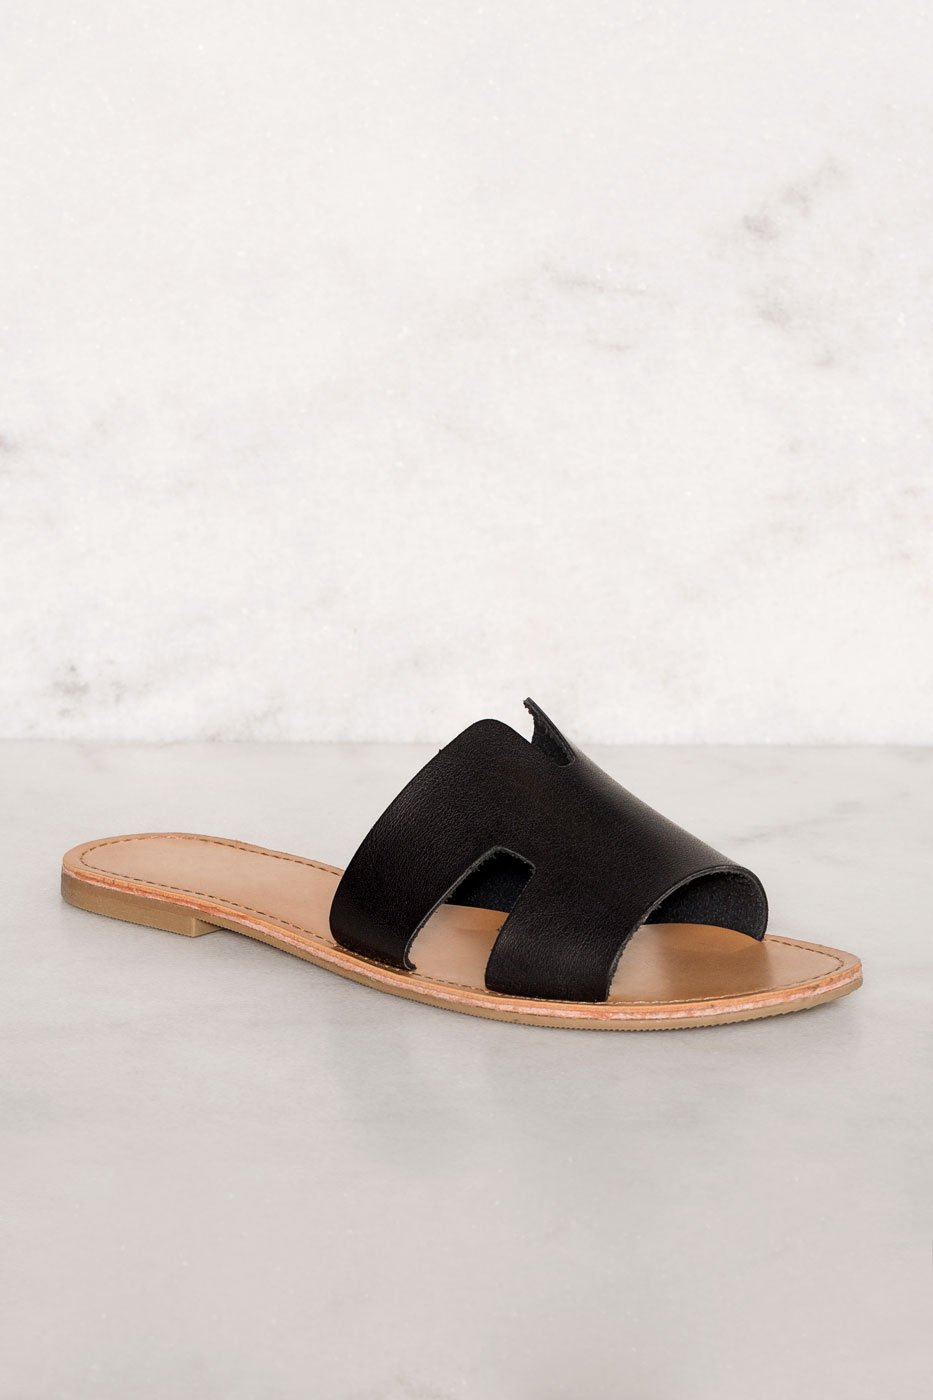 Sandals - Mira Slip-On Sandals - Black